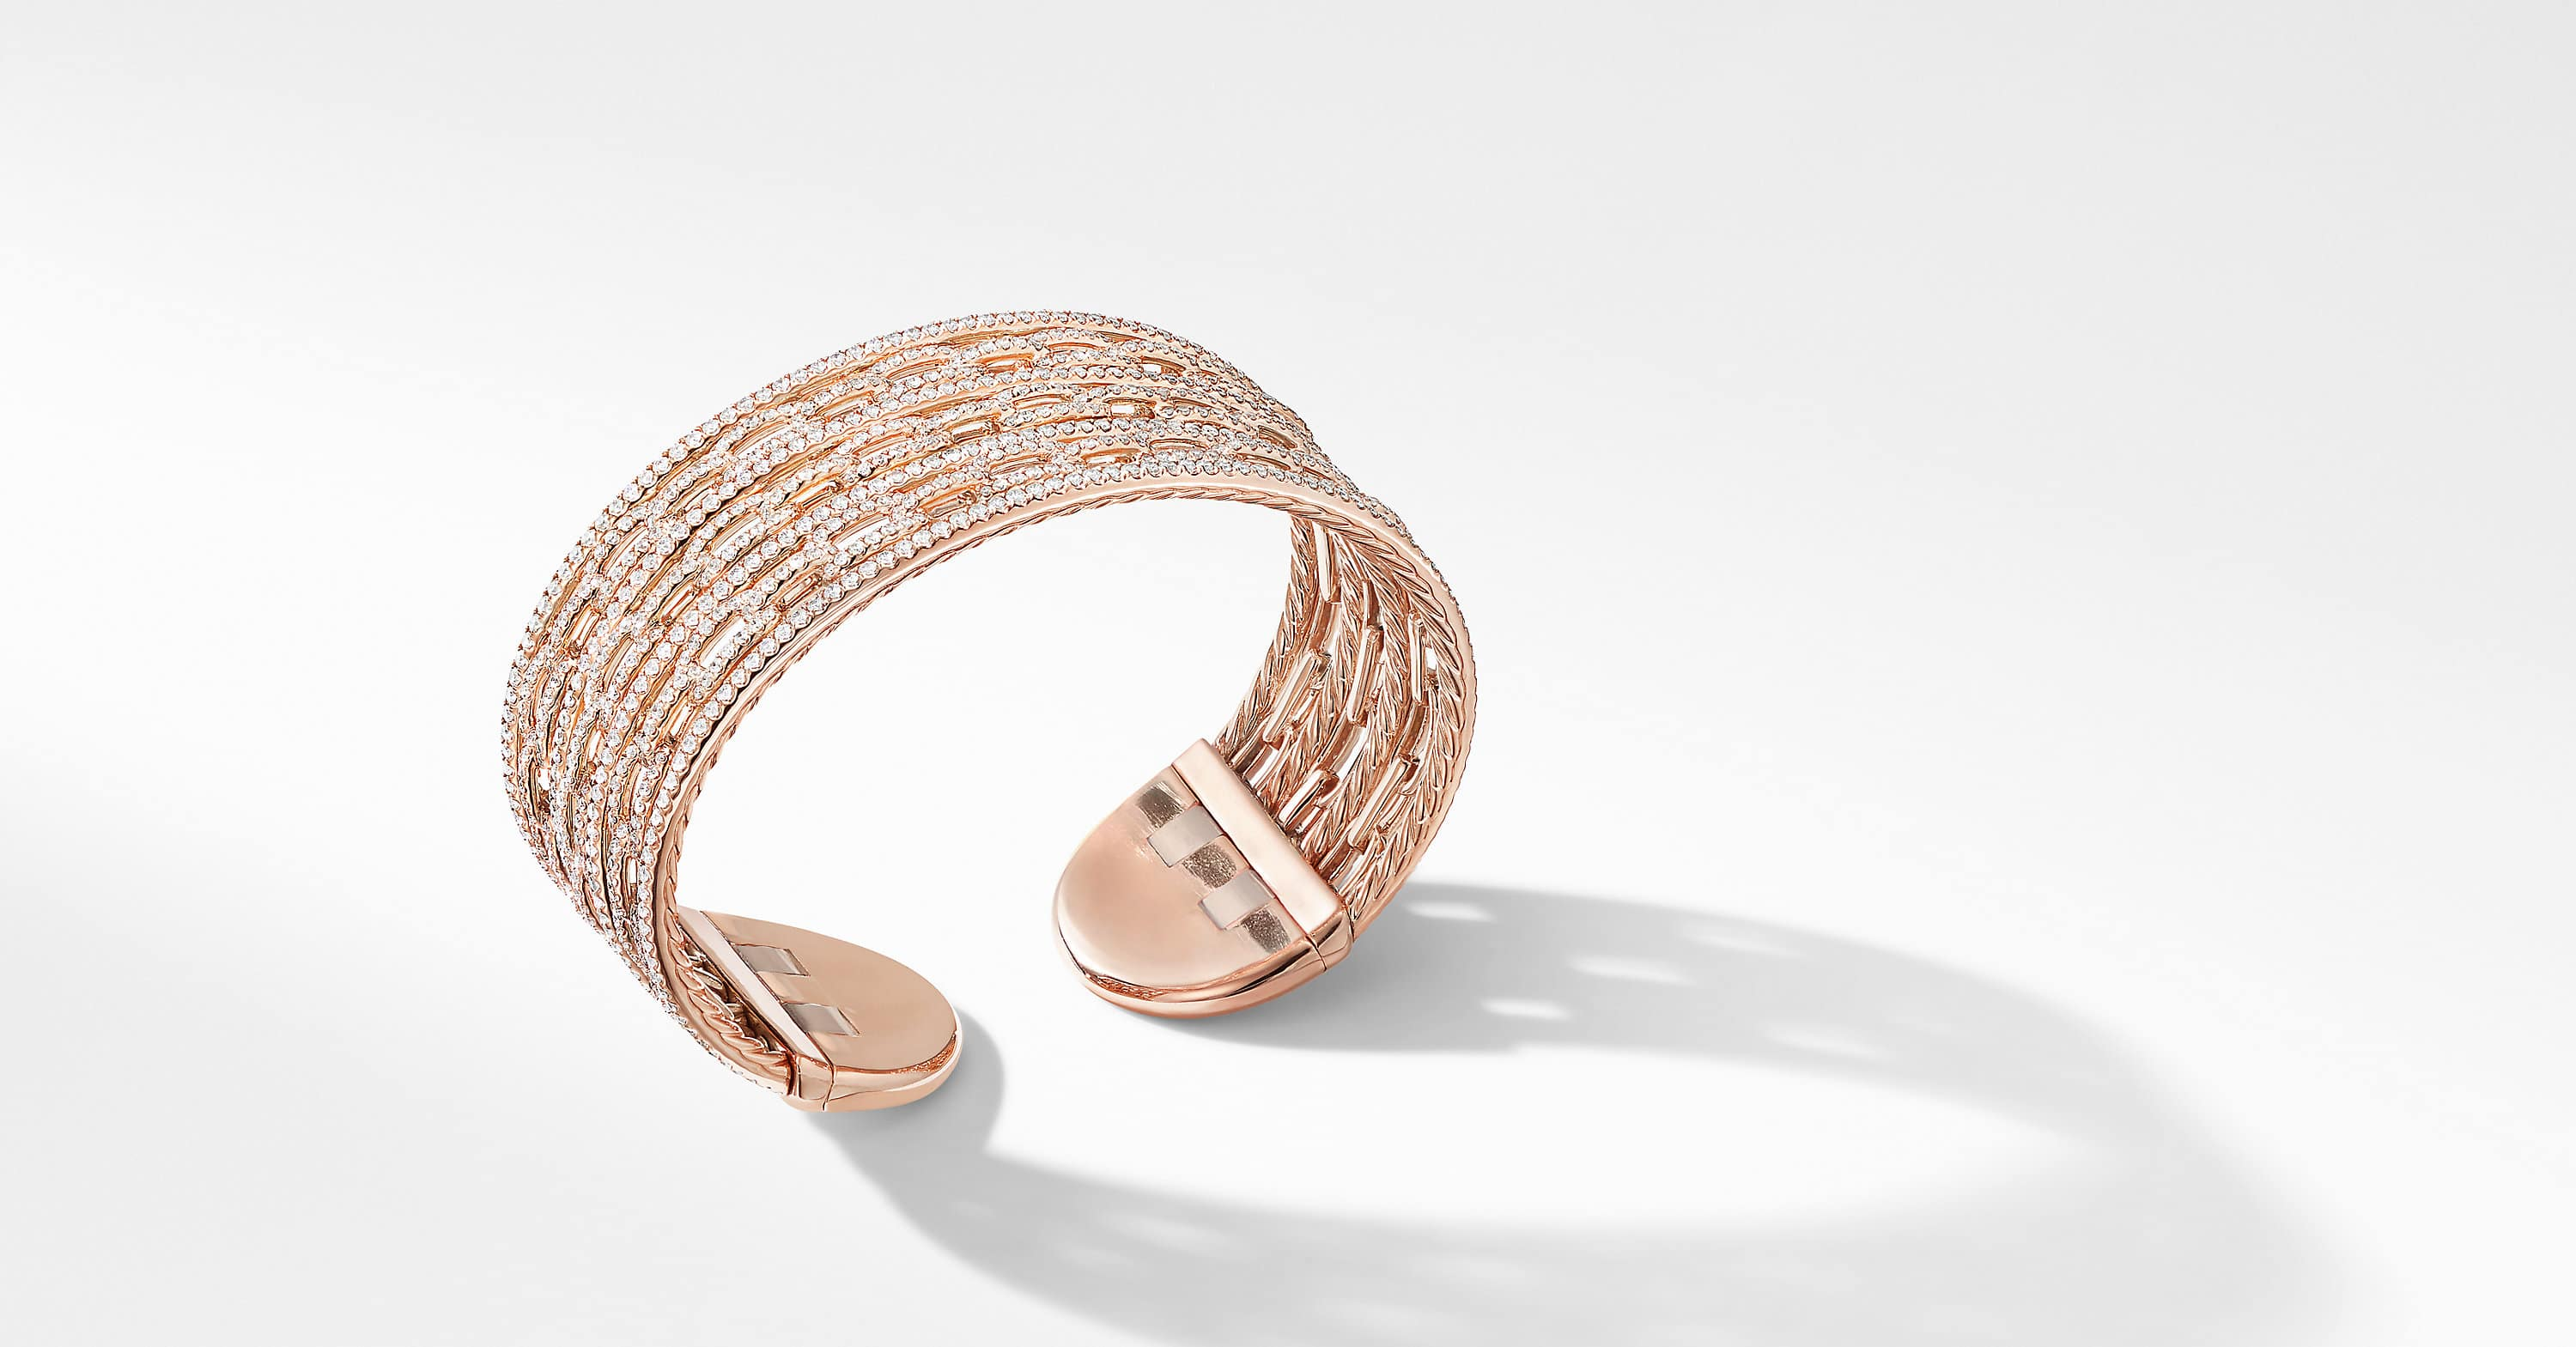 Stax Cuff Bracelet in 18K Rose Gold with Pavé